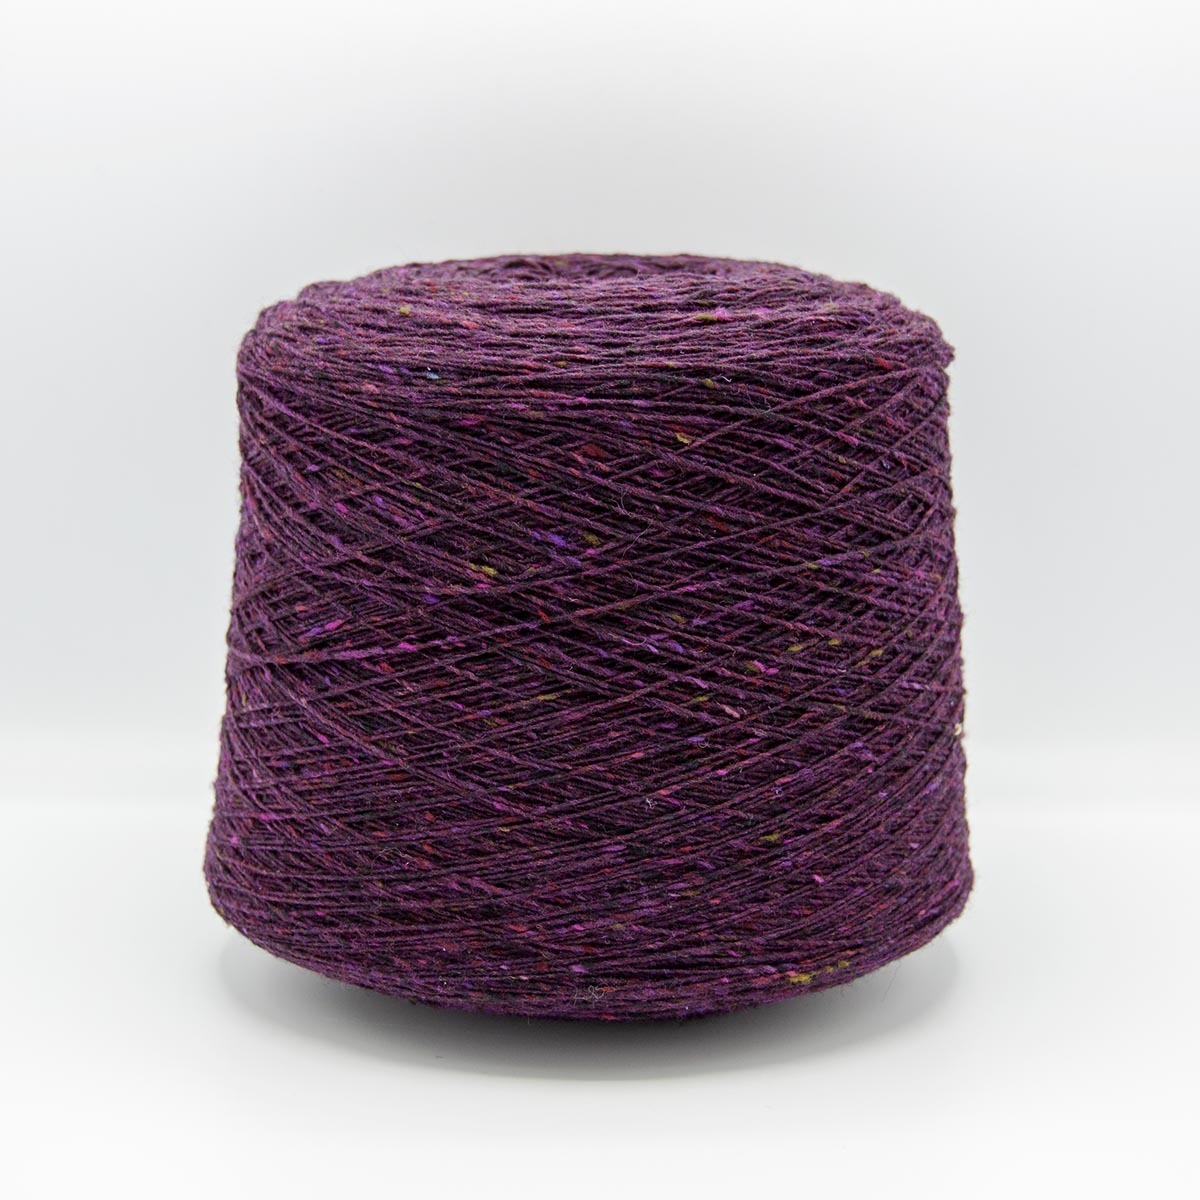 Knoll Yarns Soft Donegal (одинарный твид) - 5538